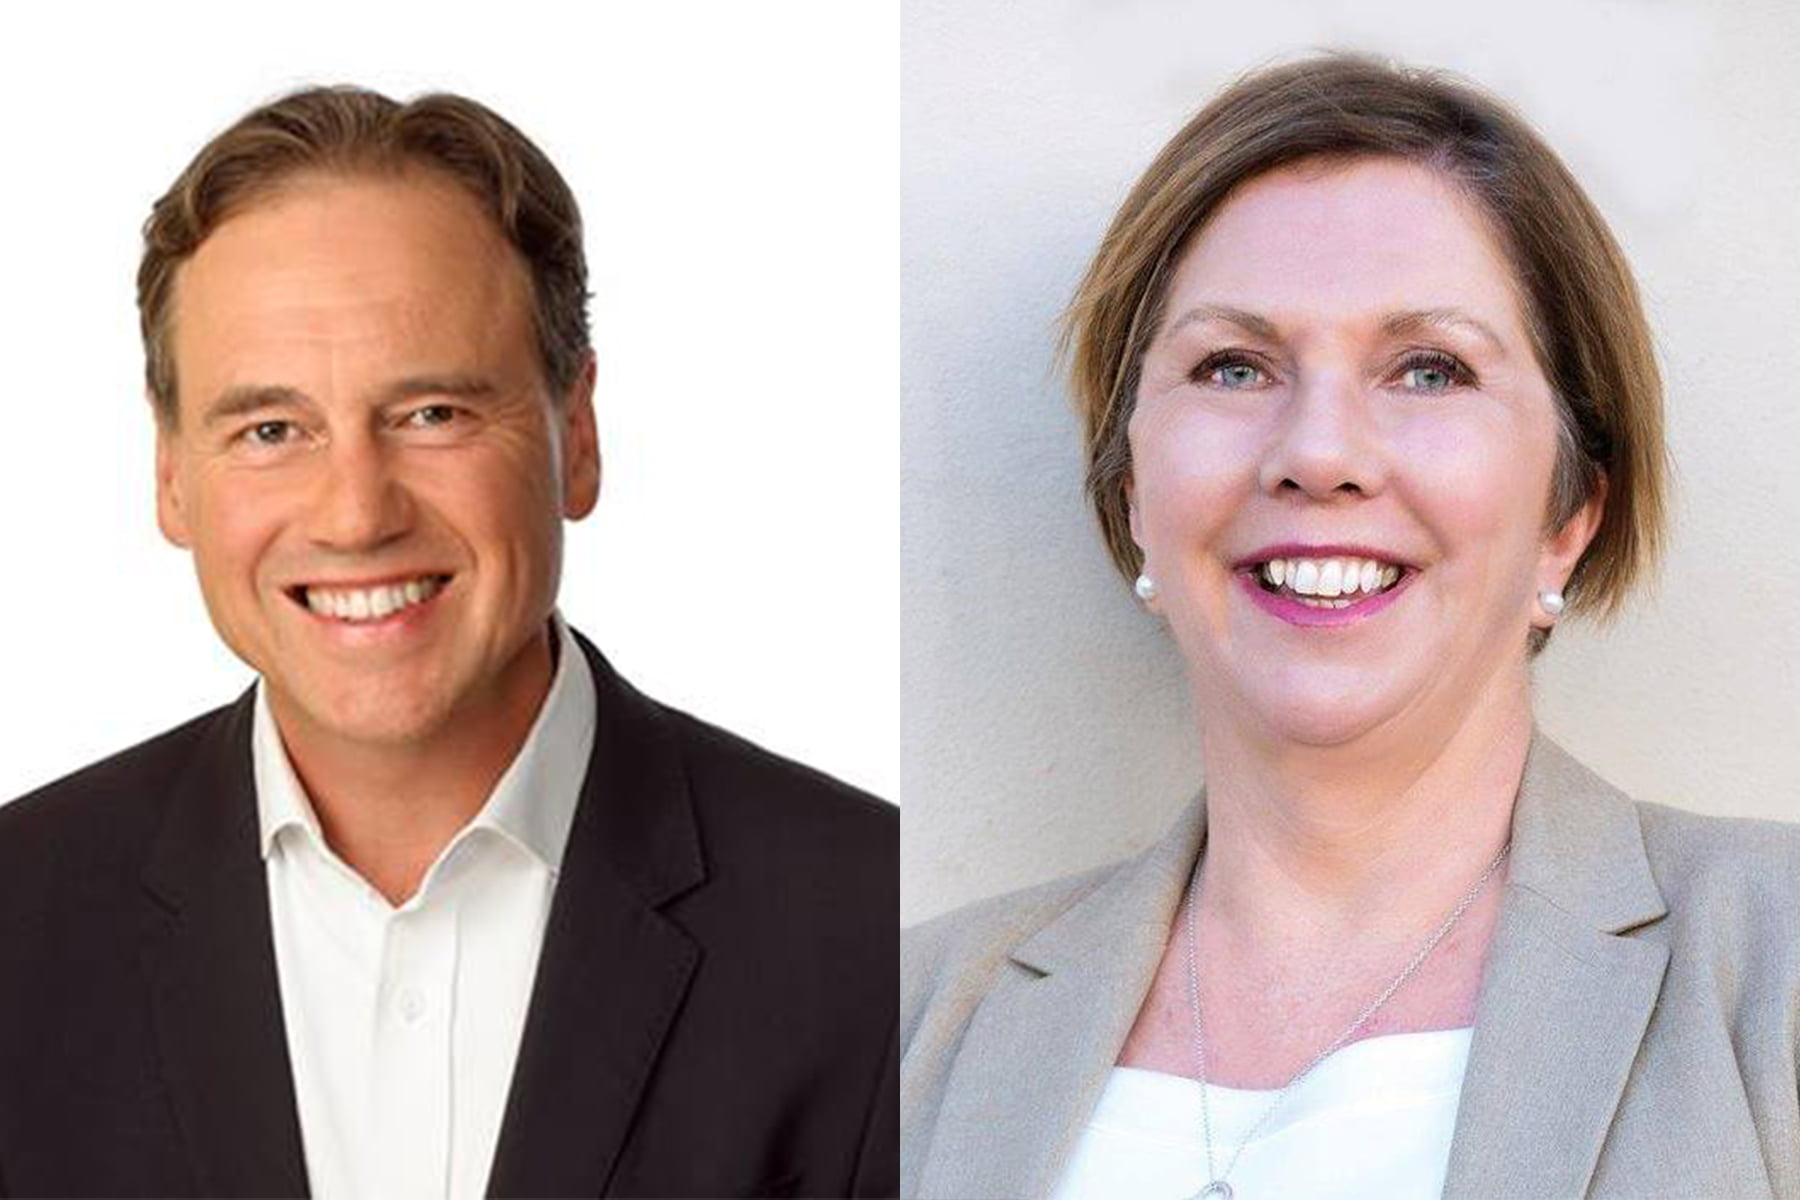 greg hunt and catherine king